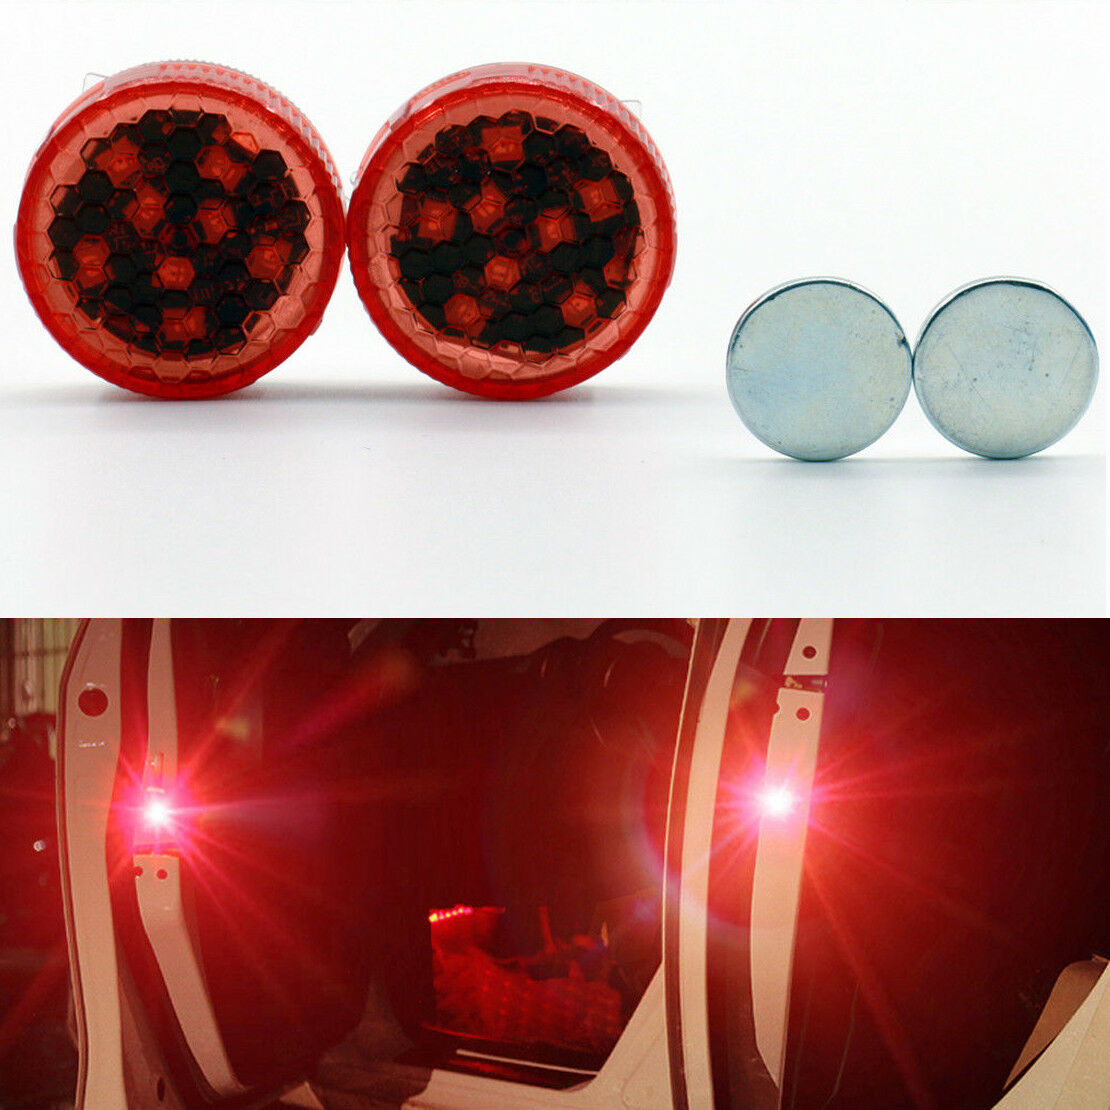 2x Universal Car Door Opened Warning Flash Light Kit Anti-collid Wireless 8 LED